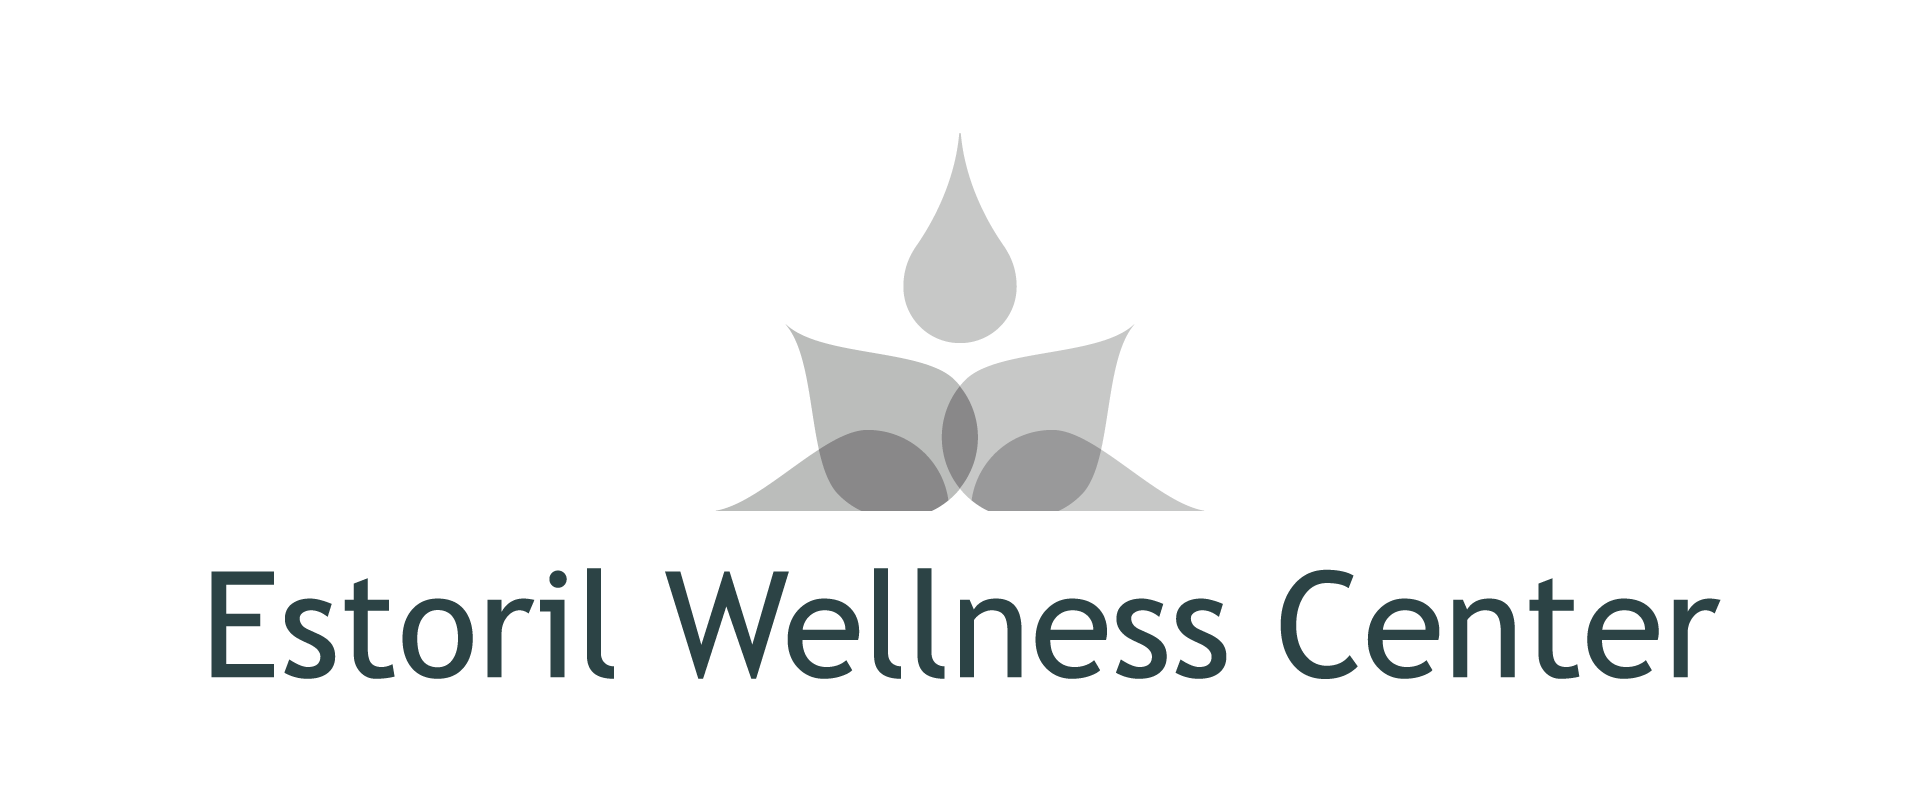 Estoril Wellness Center